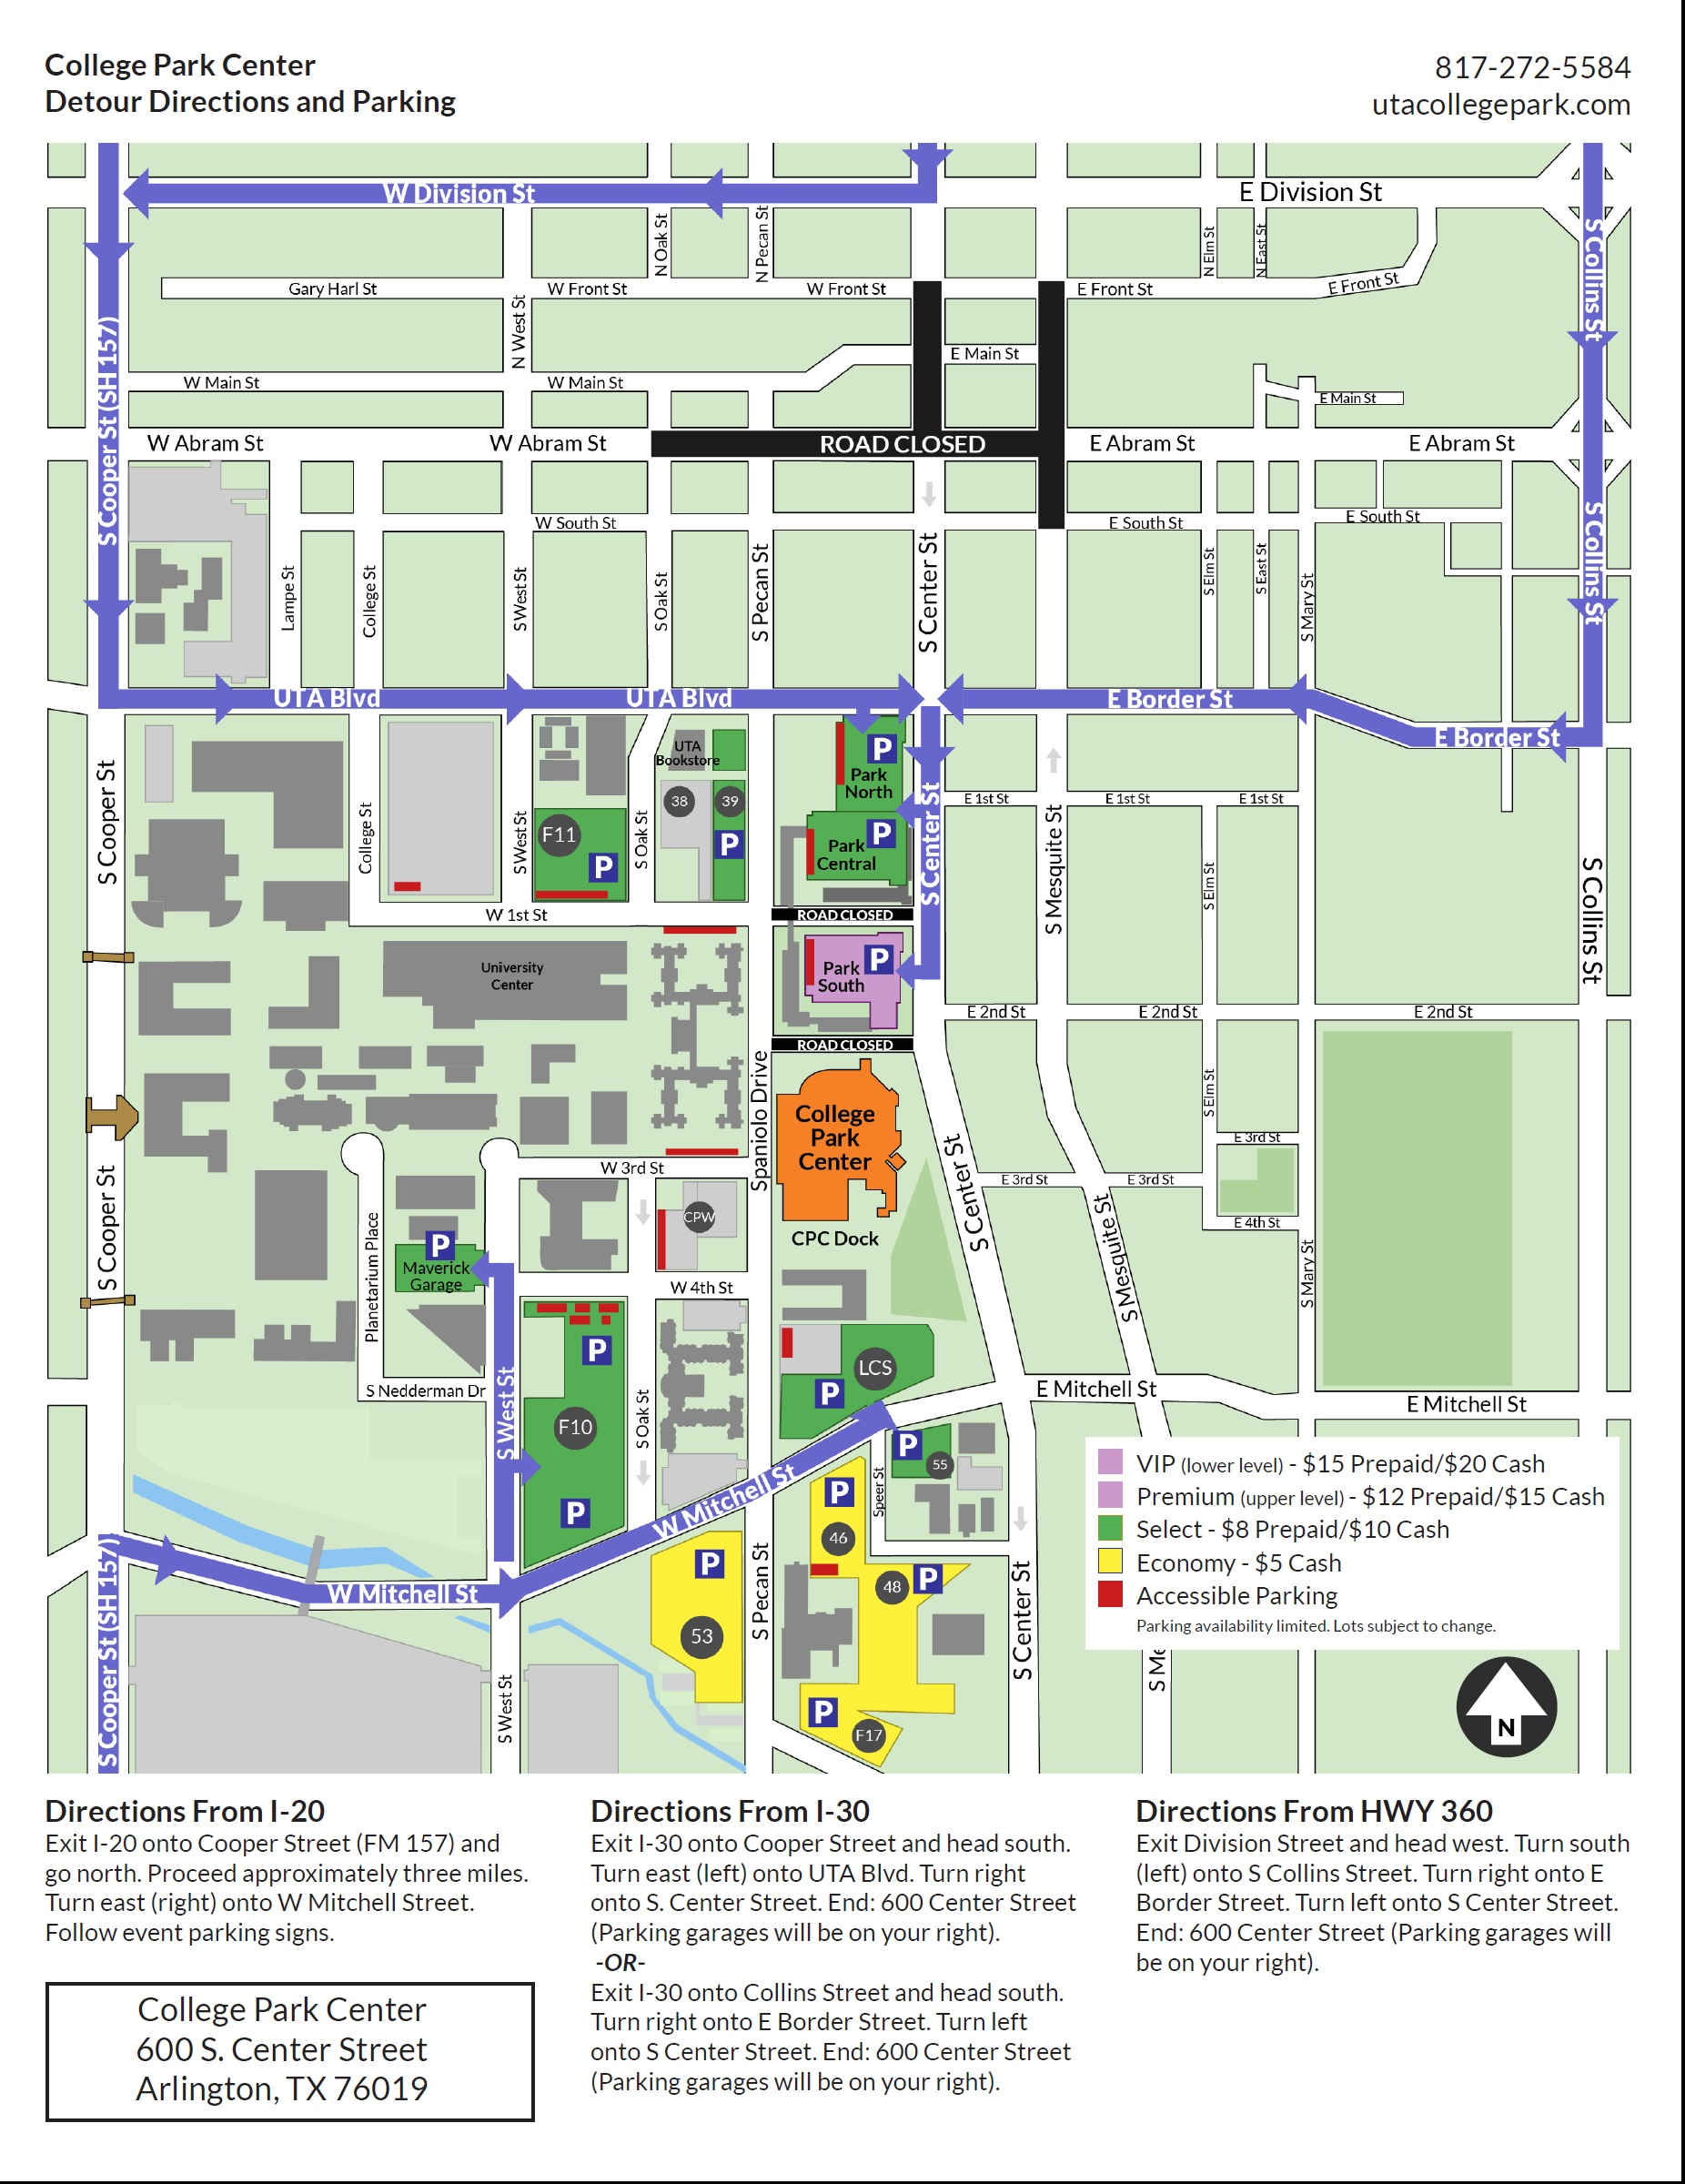 casting crowns parking map directions and road closures